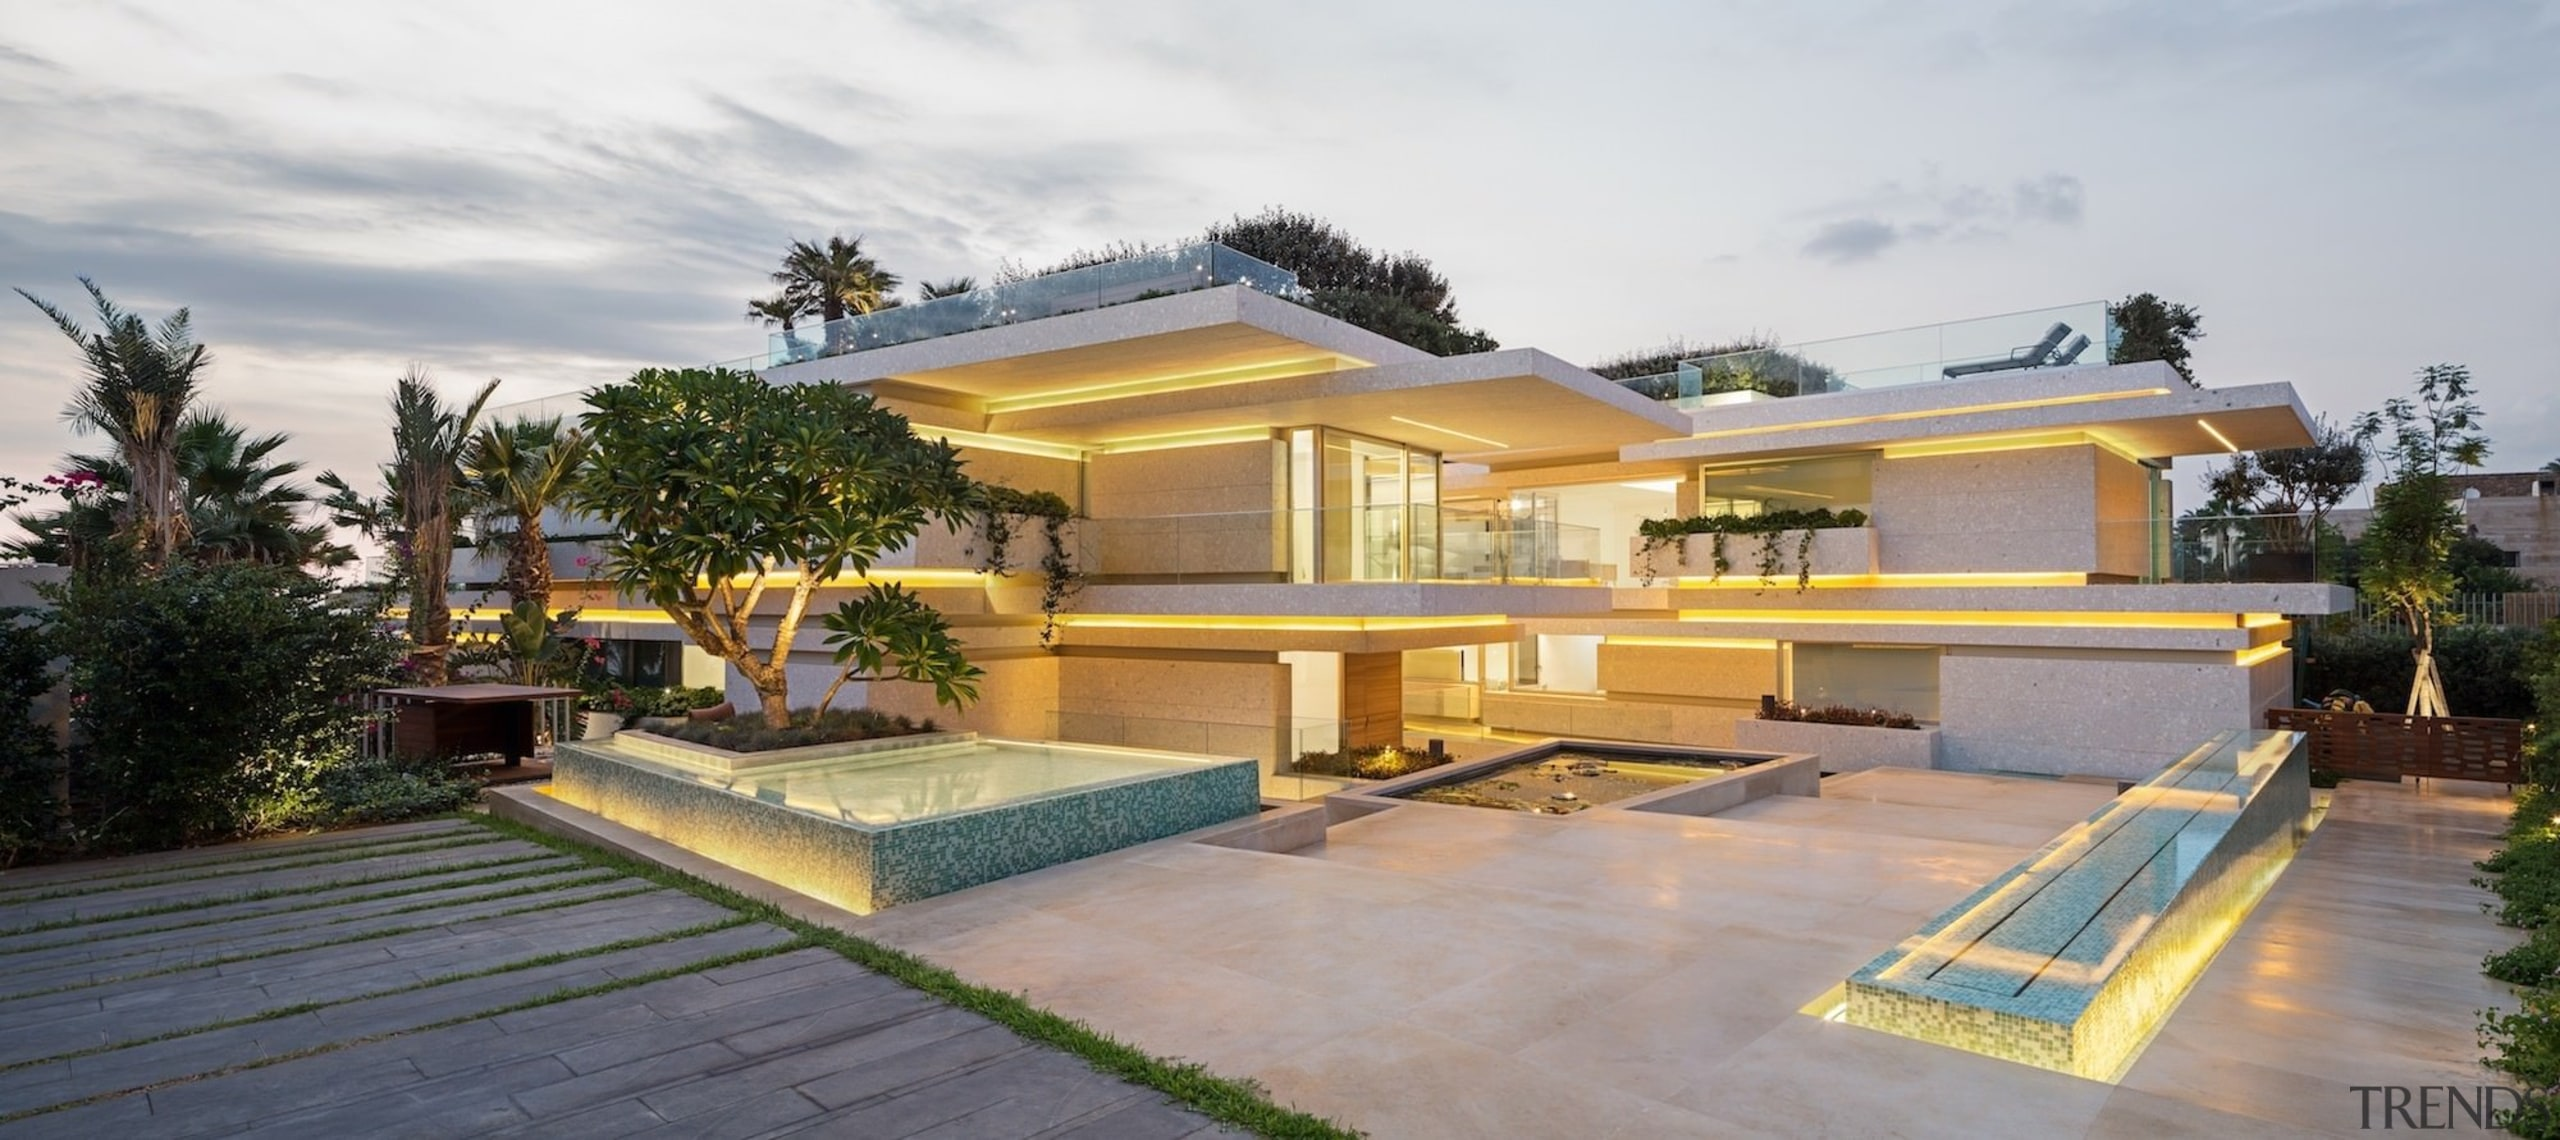 Recessed lighting is hidden during the day, but backyard, elevation, estate, facade, home, house, property, real estate, residential area, villa, gray